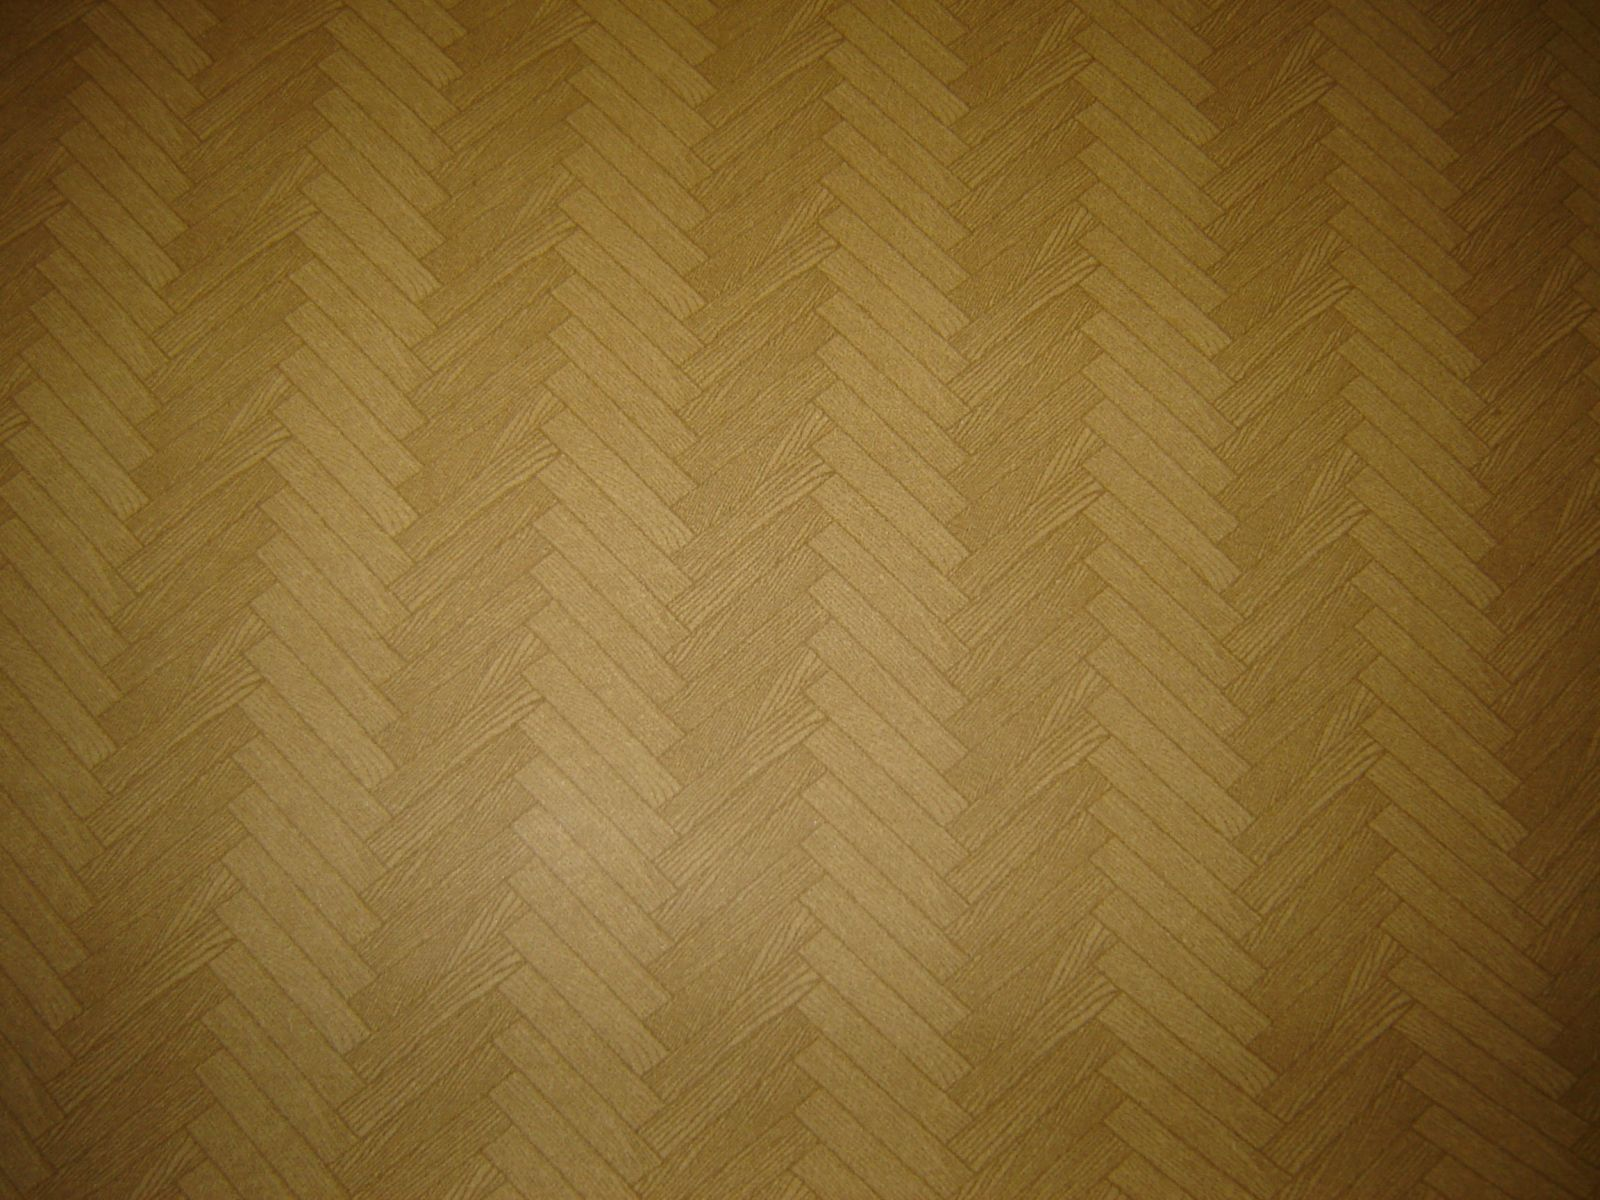 Dolls House Flooring Lino Parquet Wallpaper,  Free Delivery